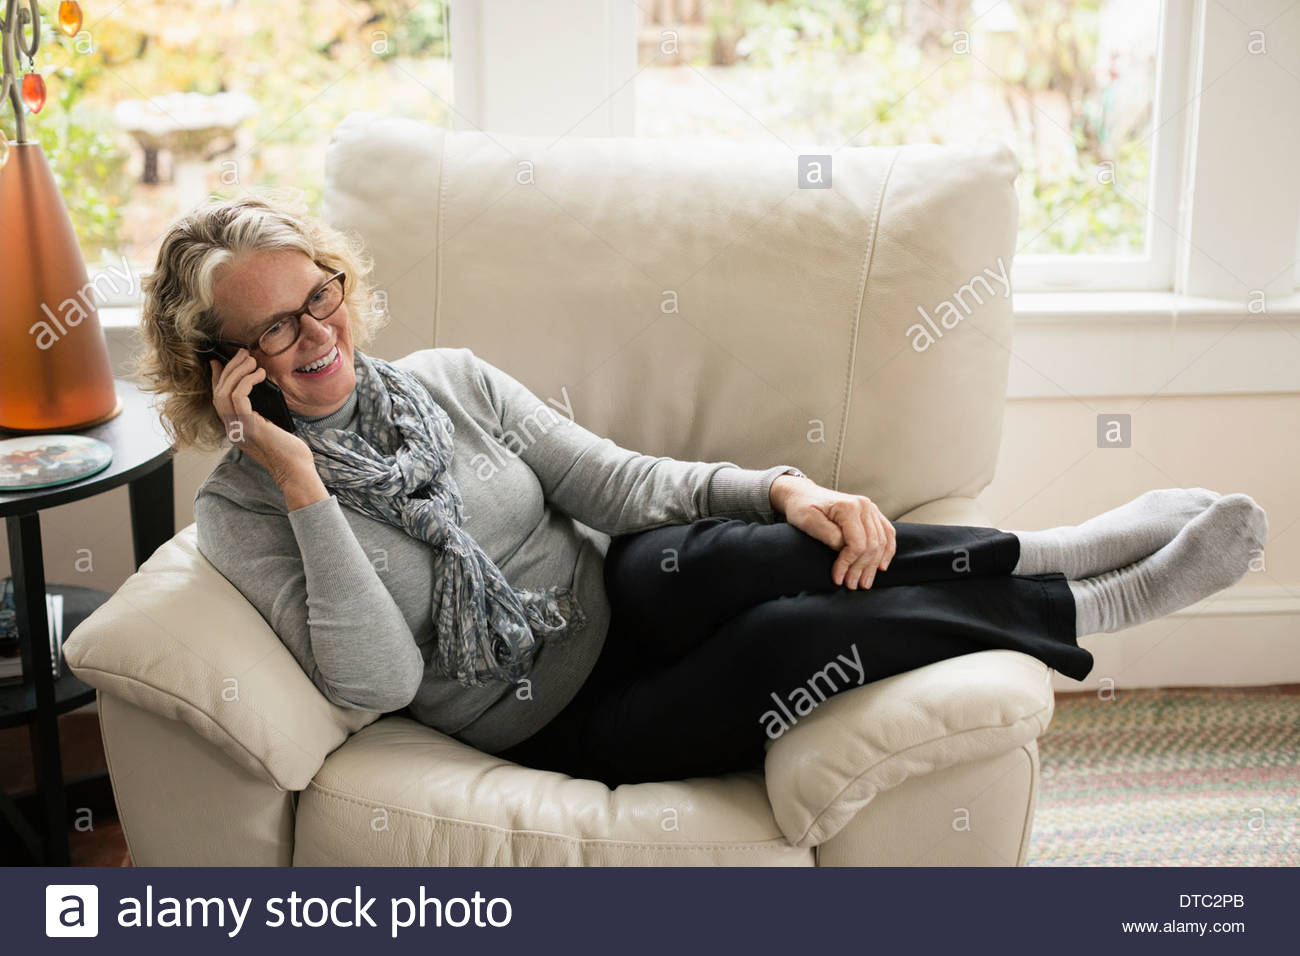 Relaxed senior woman sitting on chair talking on mobile - Stock Image